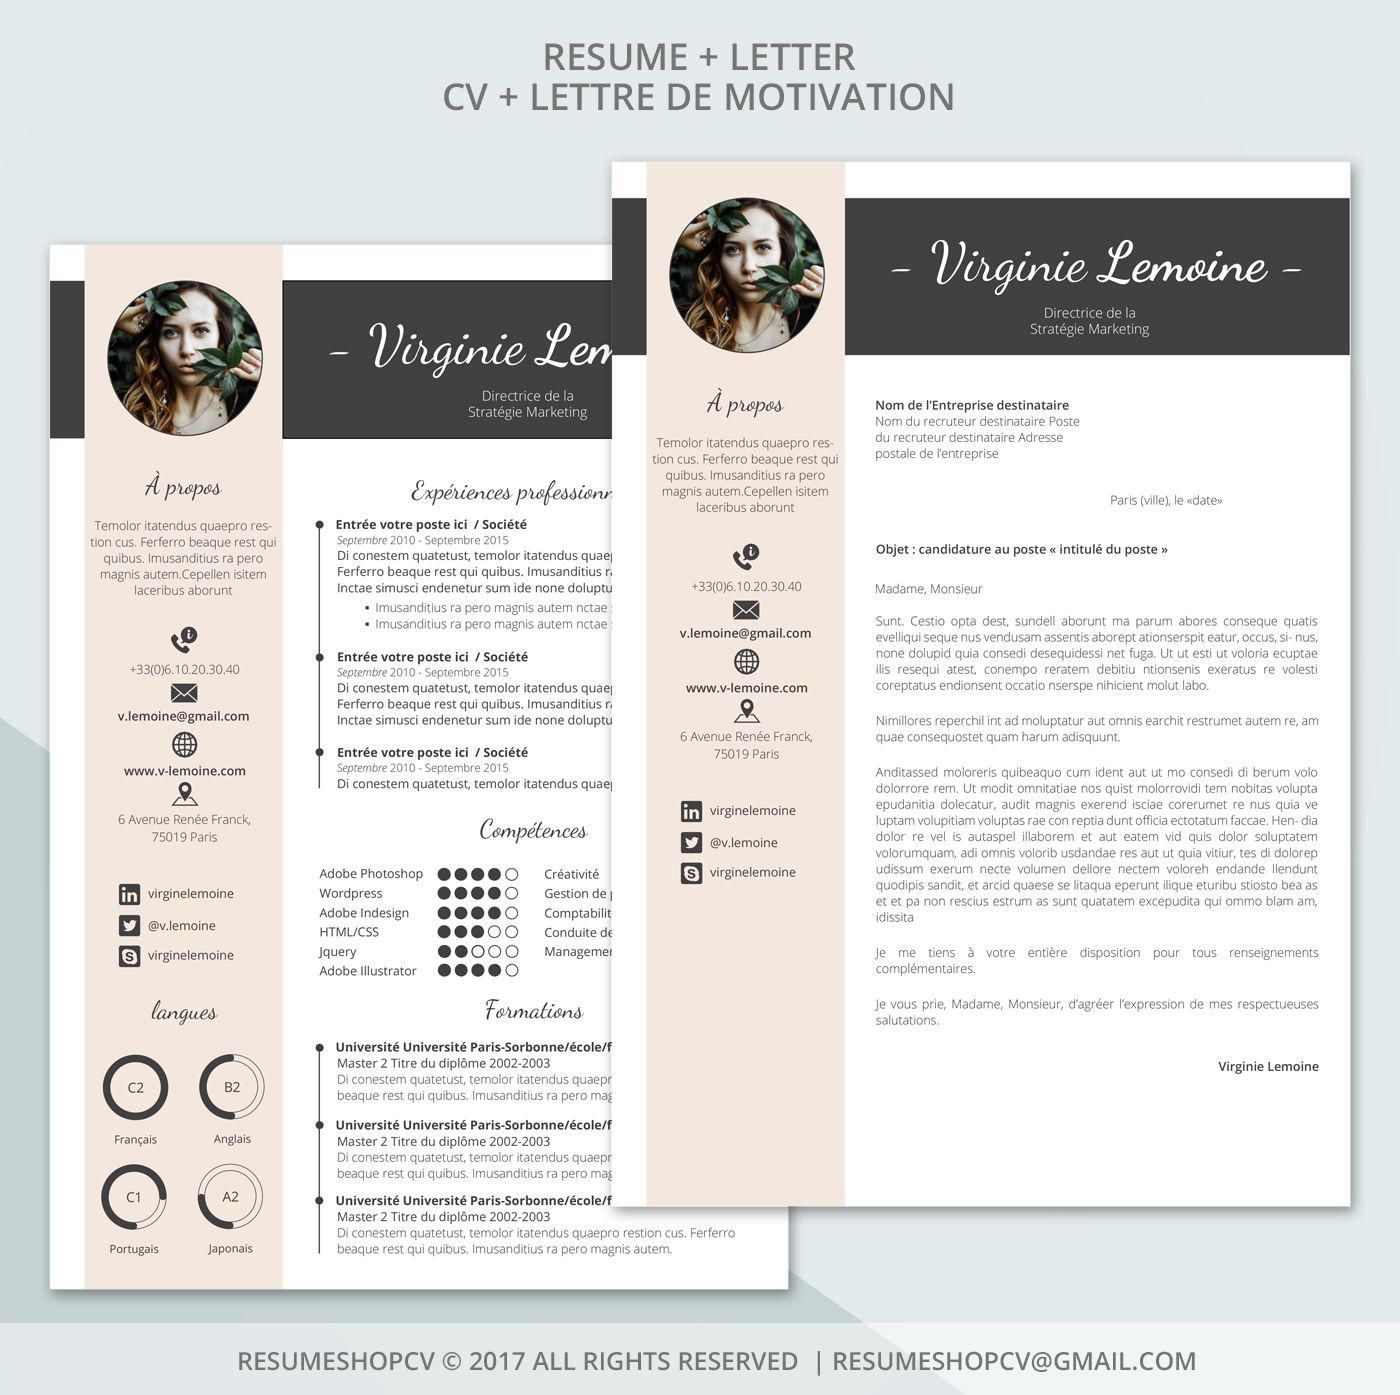 4 Cv Professional Resume Modern And Graphic 4 Letters Pack Of Extra Pictograms For Microsoft Word Brun Tanne 5 0 Cv Curriculum Vitae Modele Lettre De Motivation Microsoft Word